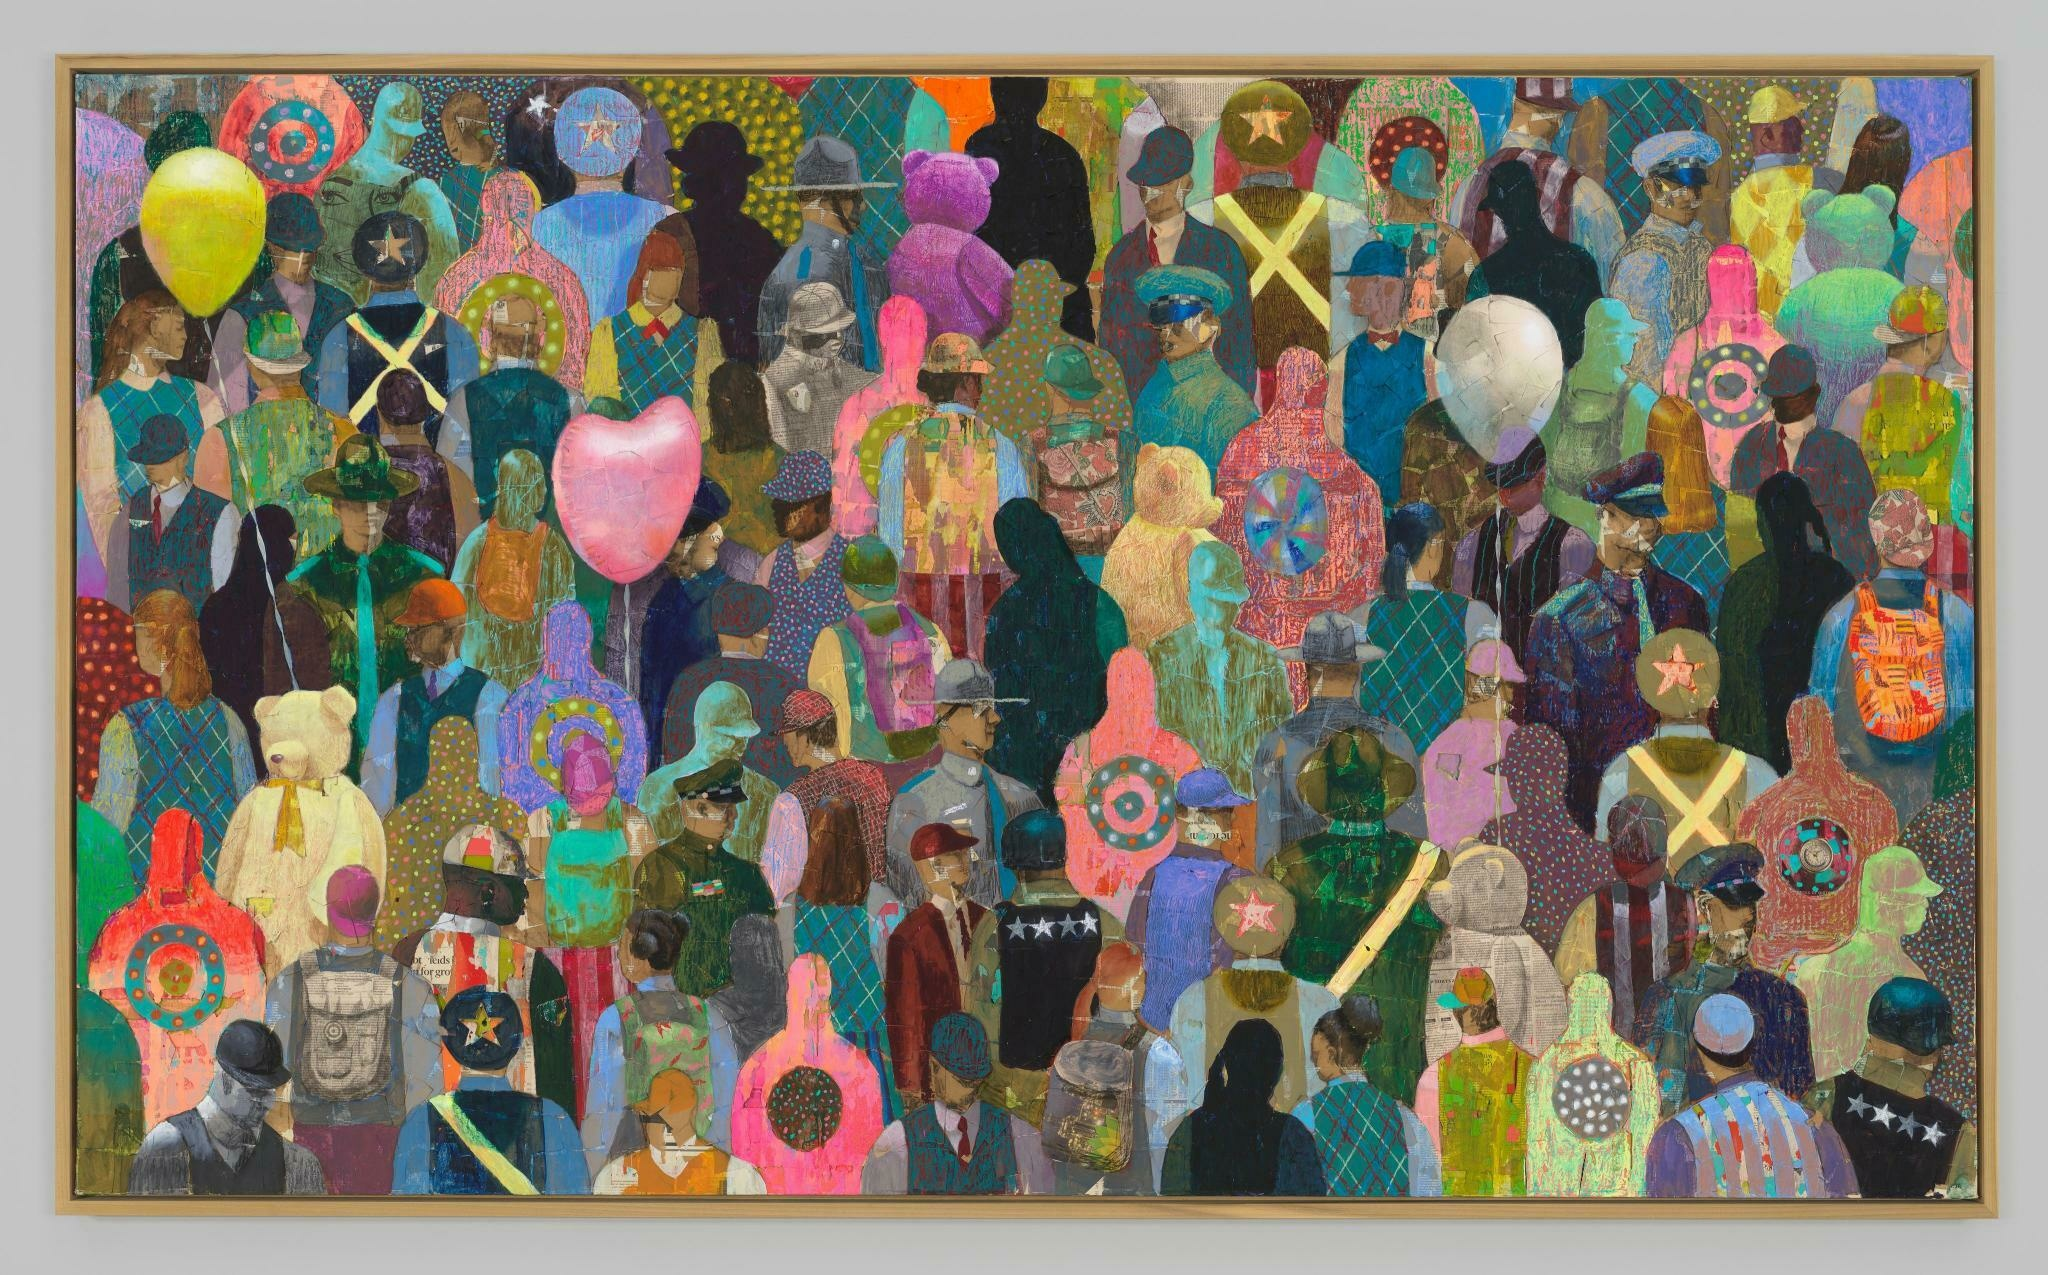 A crowd of patterned figures and balloons, overlapping seemingly extending outside of the frame